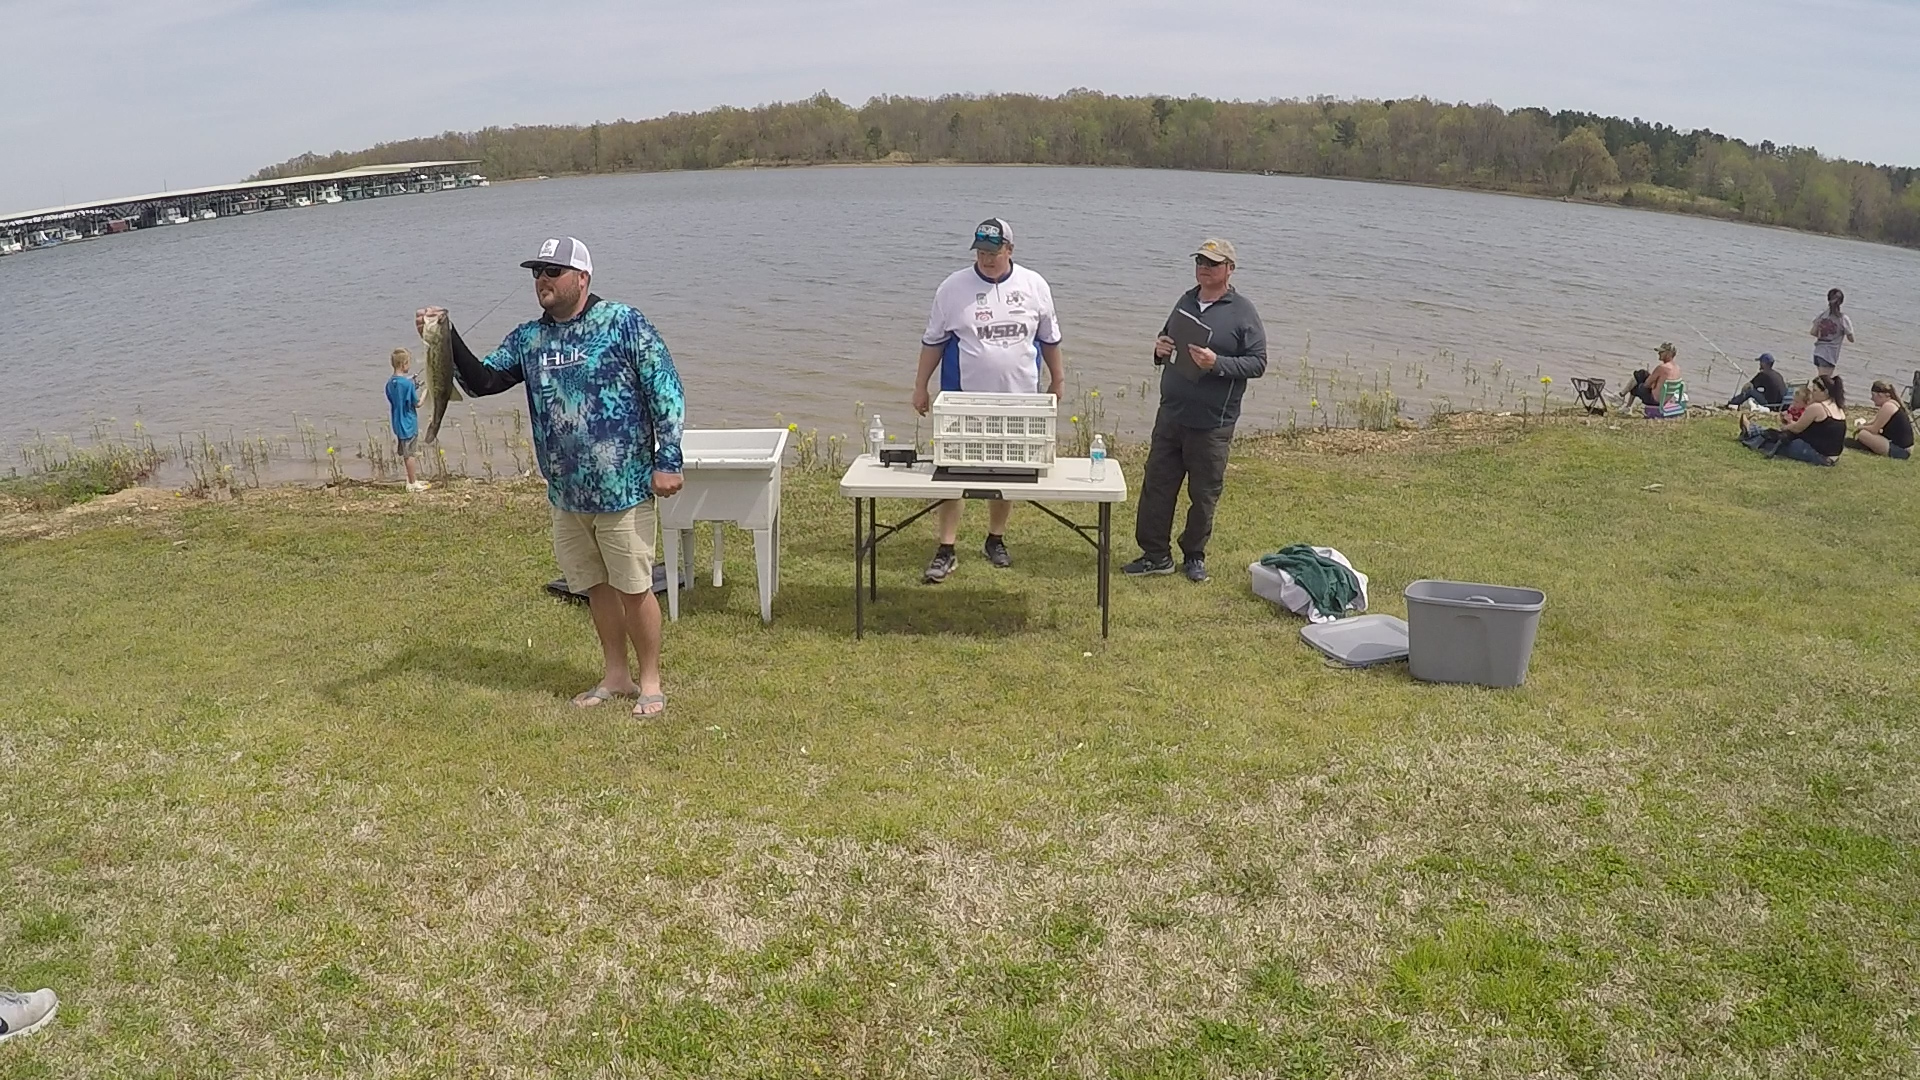 kentucky lake tournament31